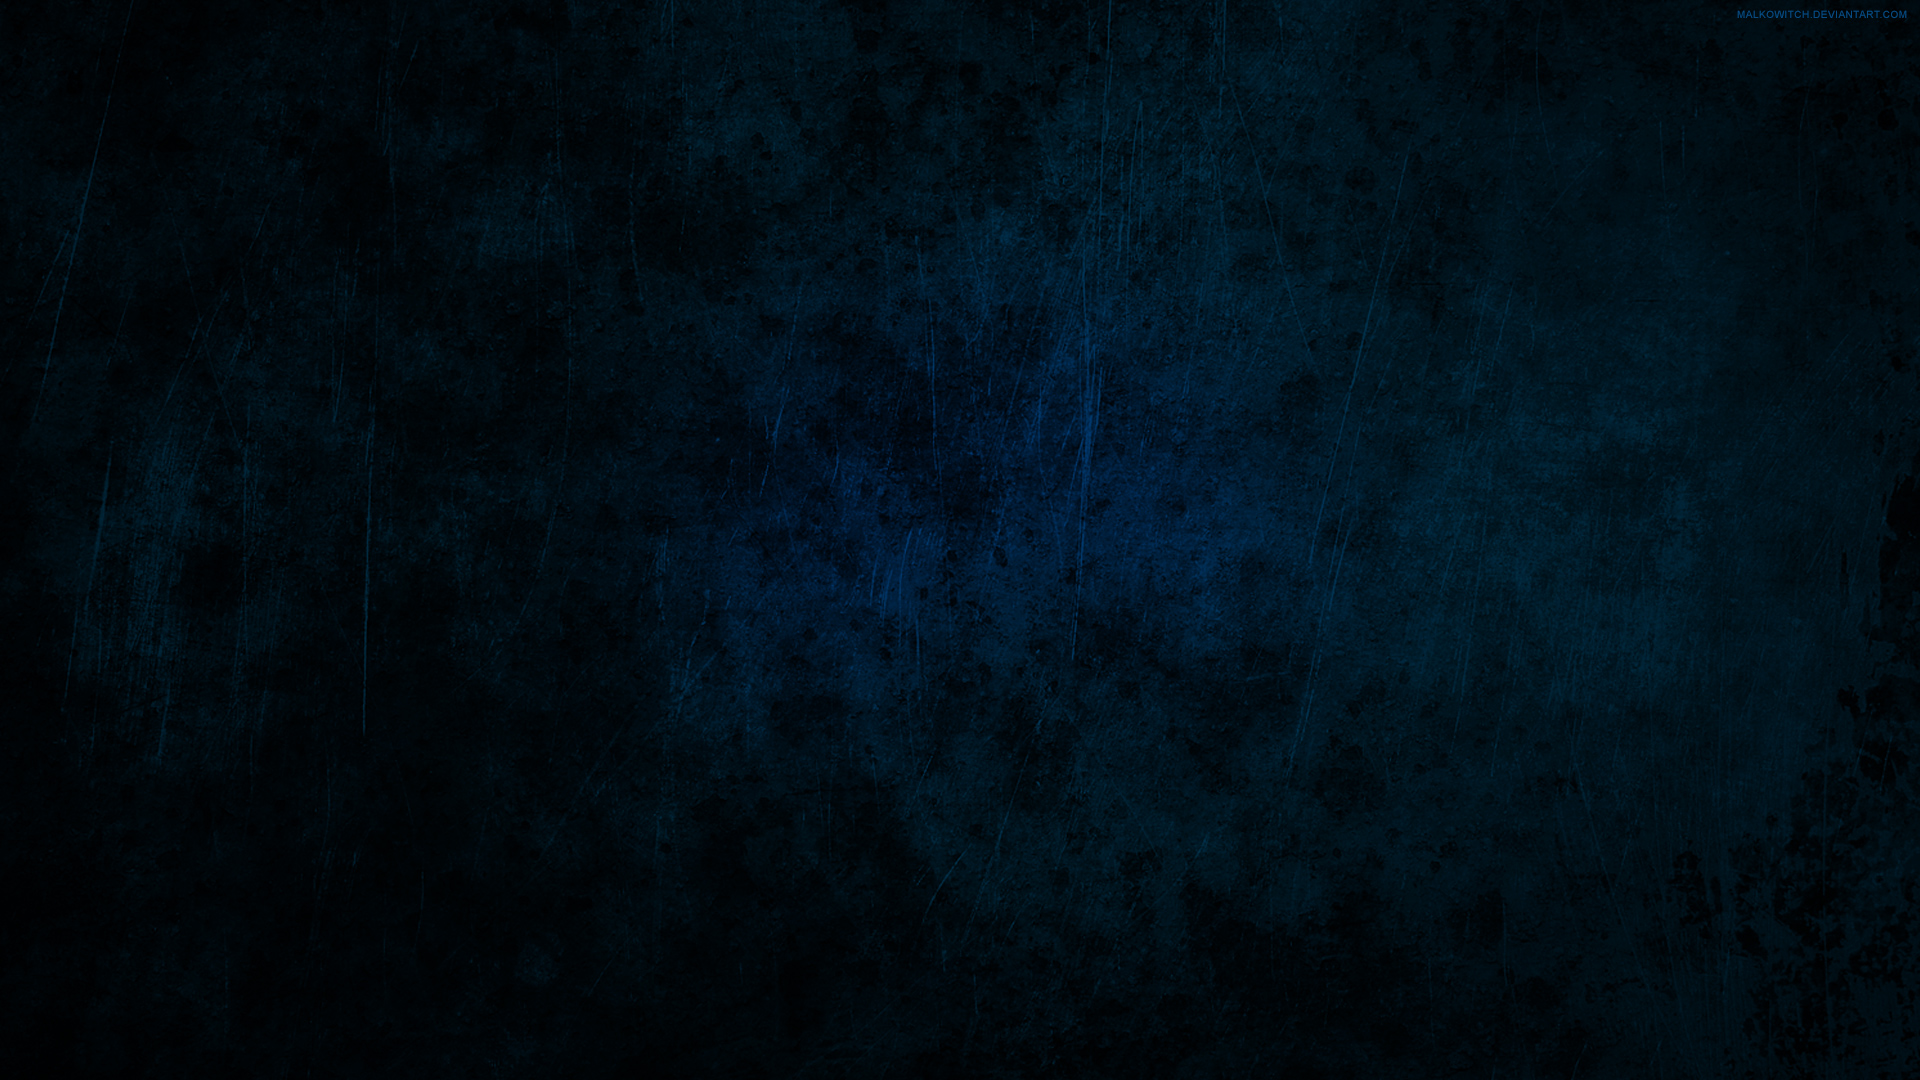 heavy duty dark pattern wallpaper - photo #40